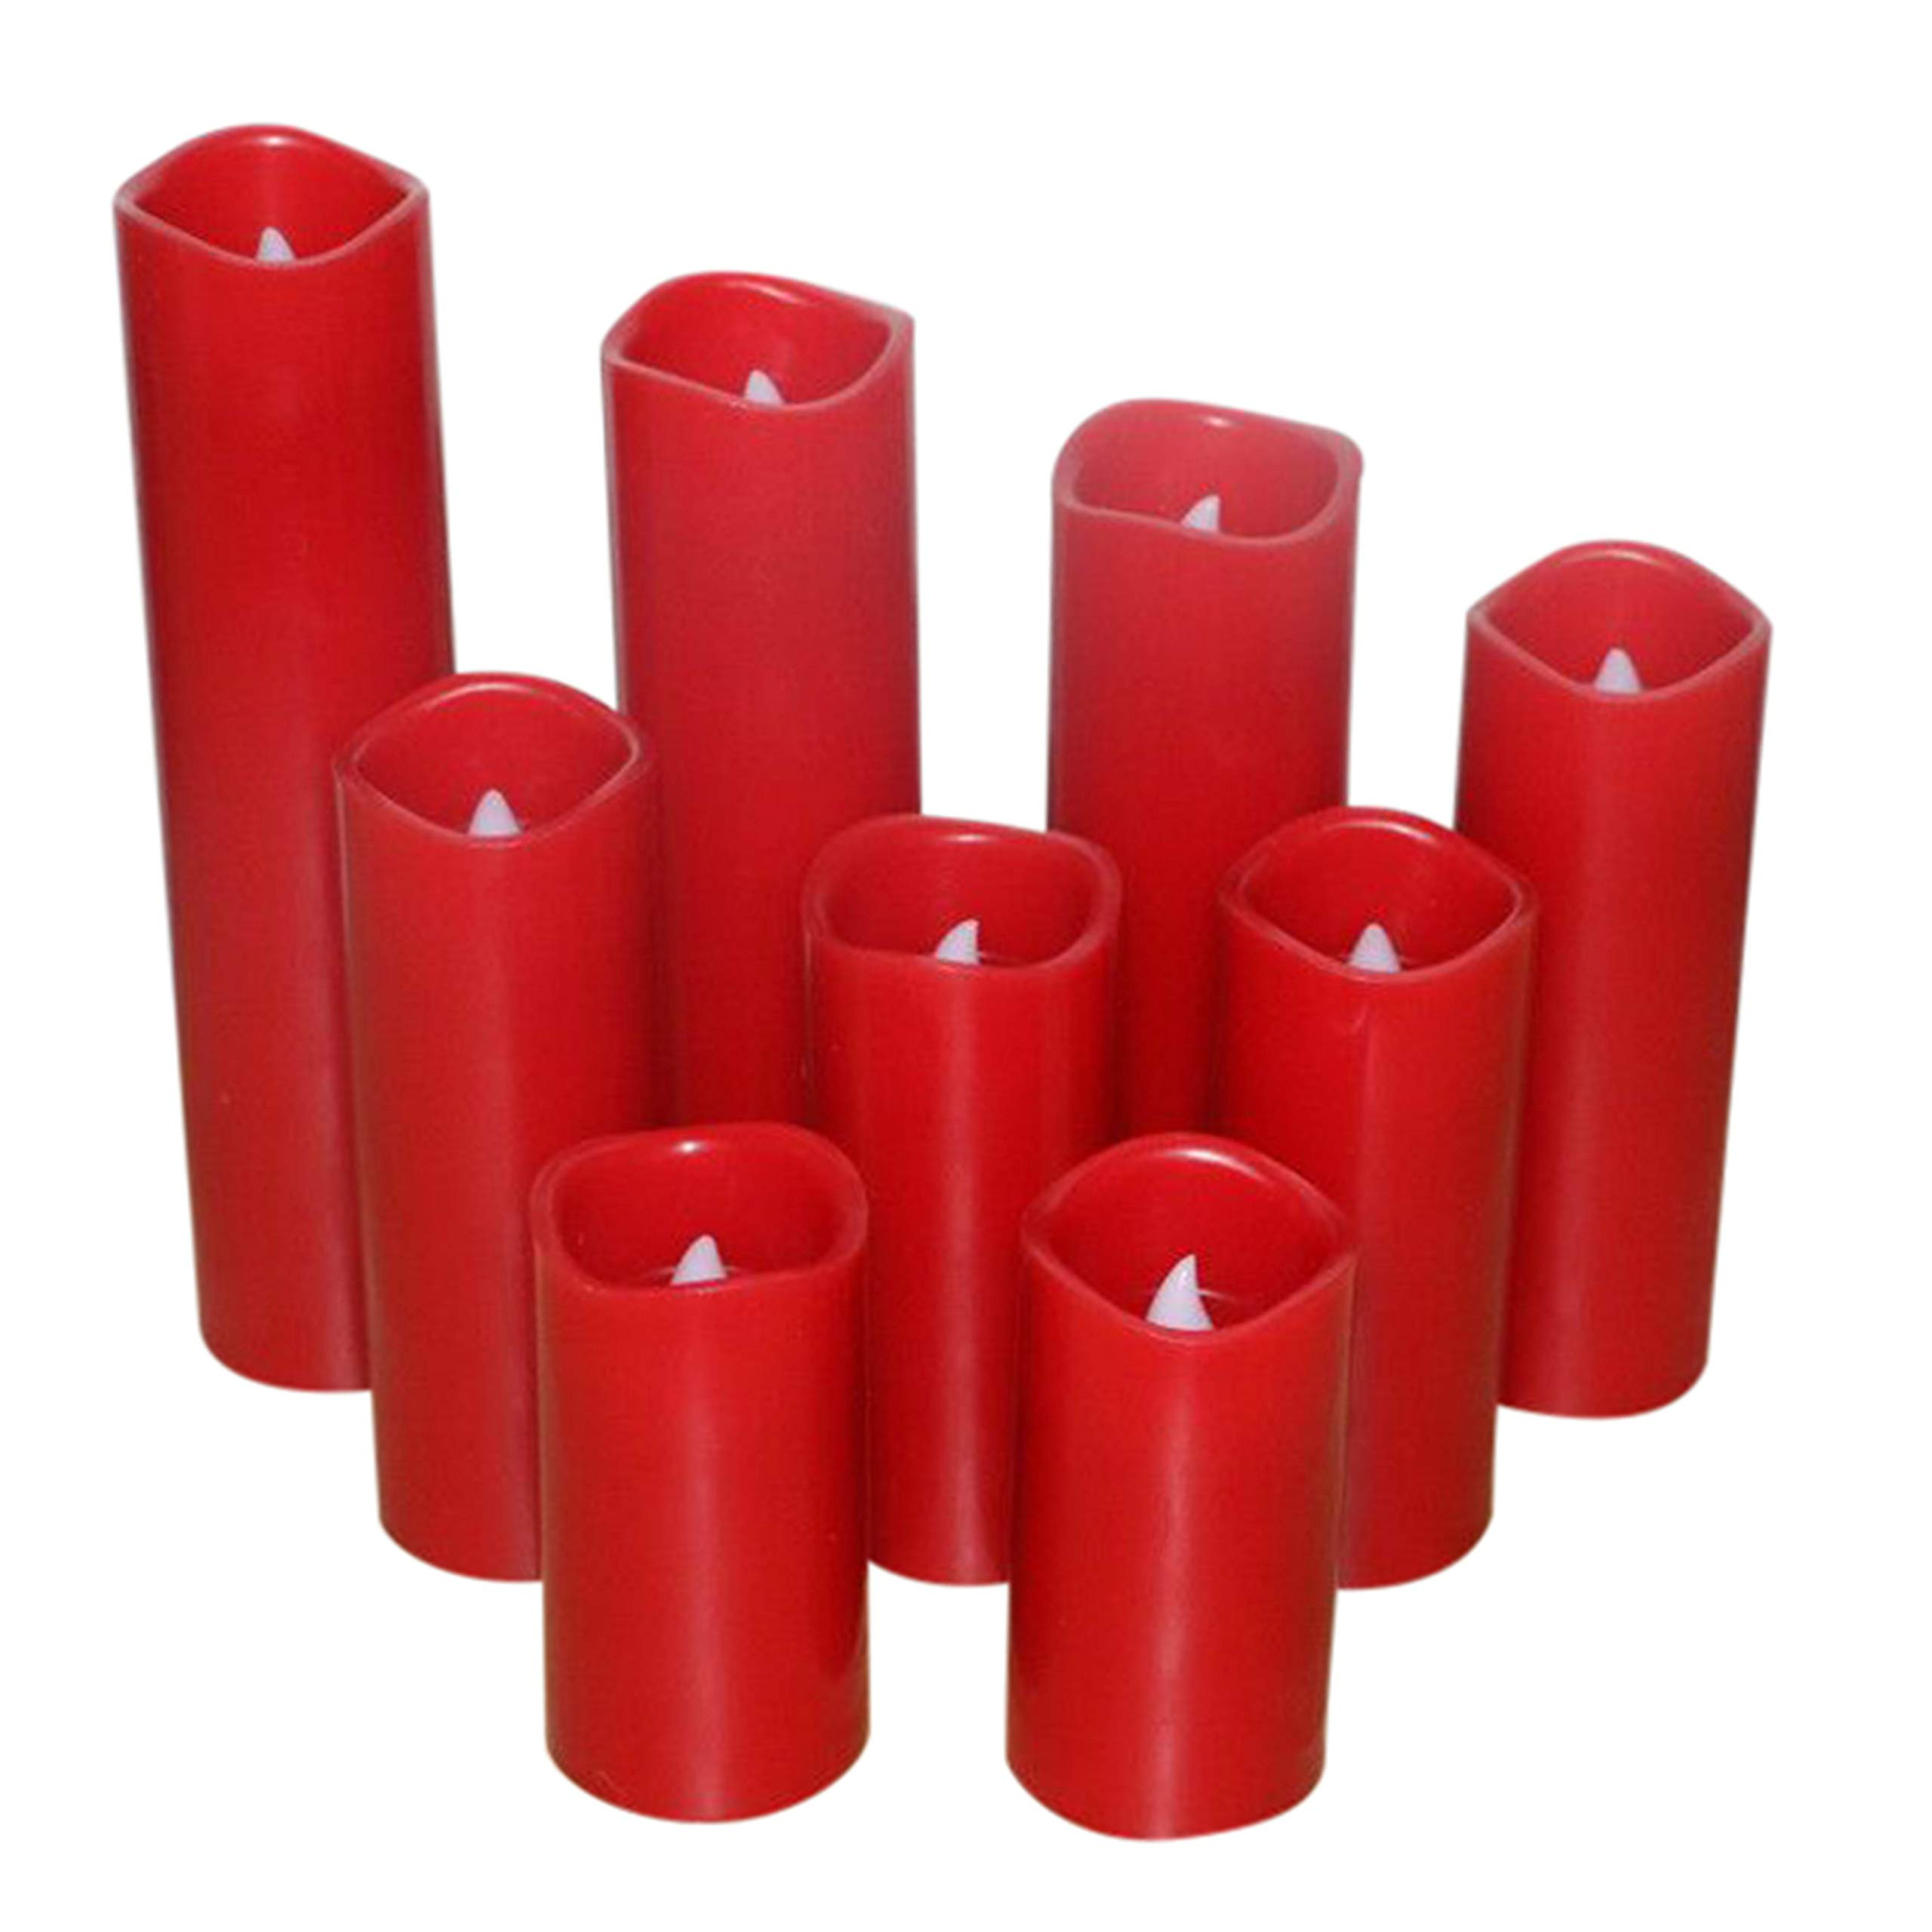 Kitch Aroma Red Flameless Pillar Flickering LED Candles with Remote for Home Decor (red) by Kitch Aroma (Image #3)